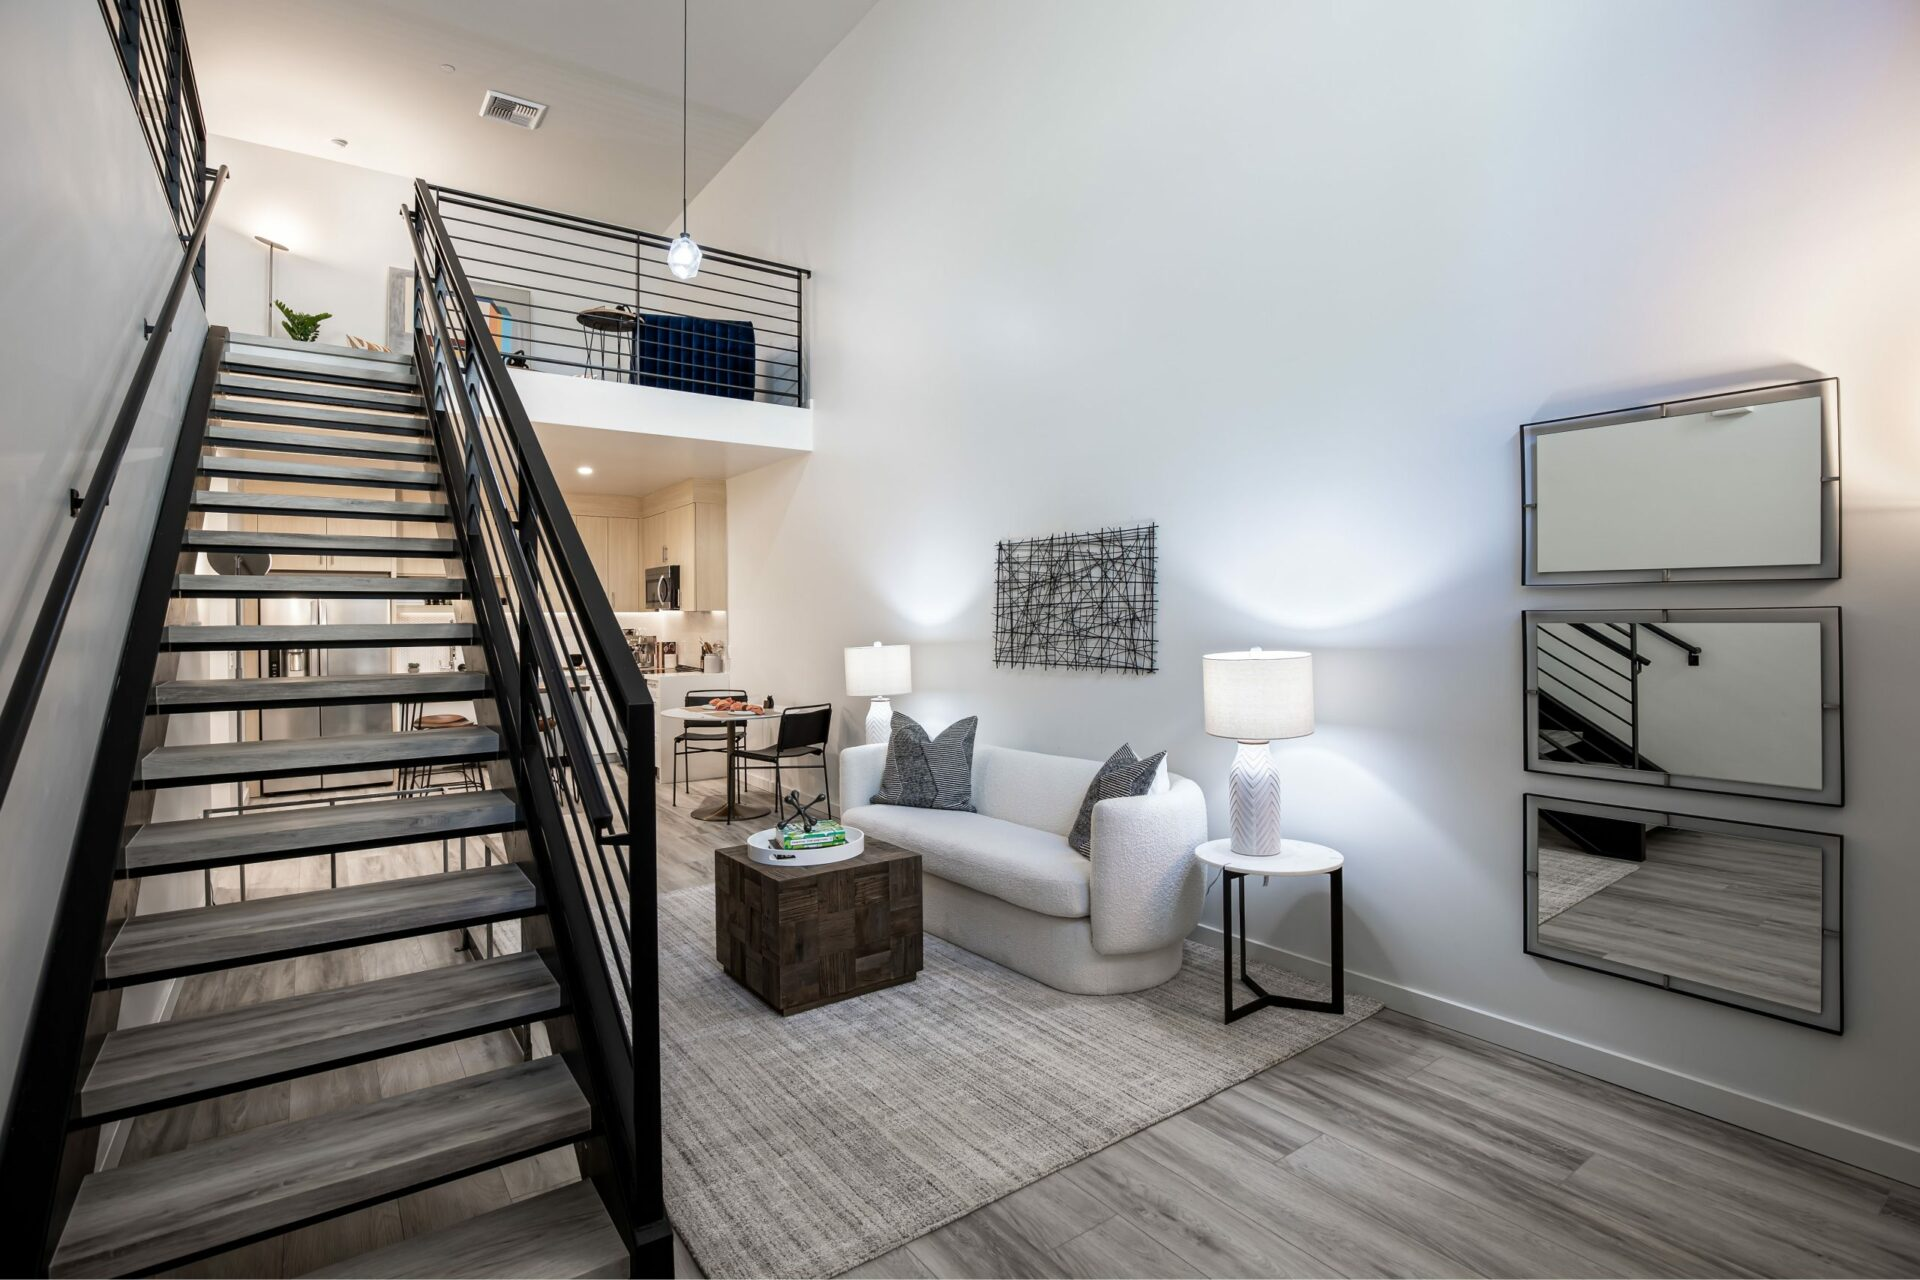 Oakland Lofted 2 Bed Townhome